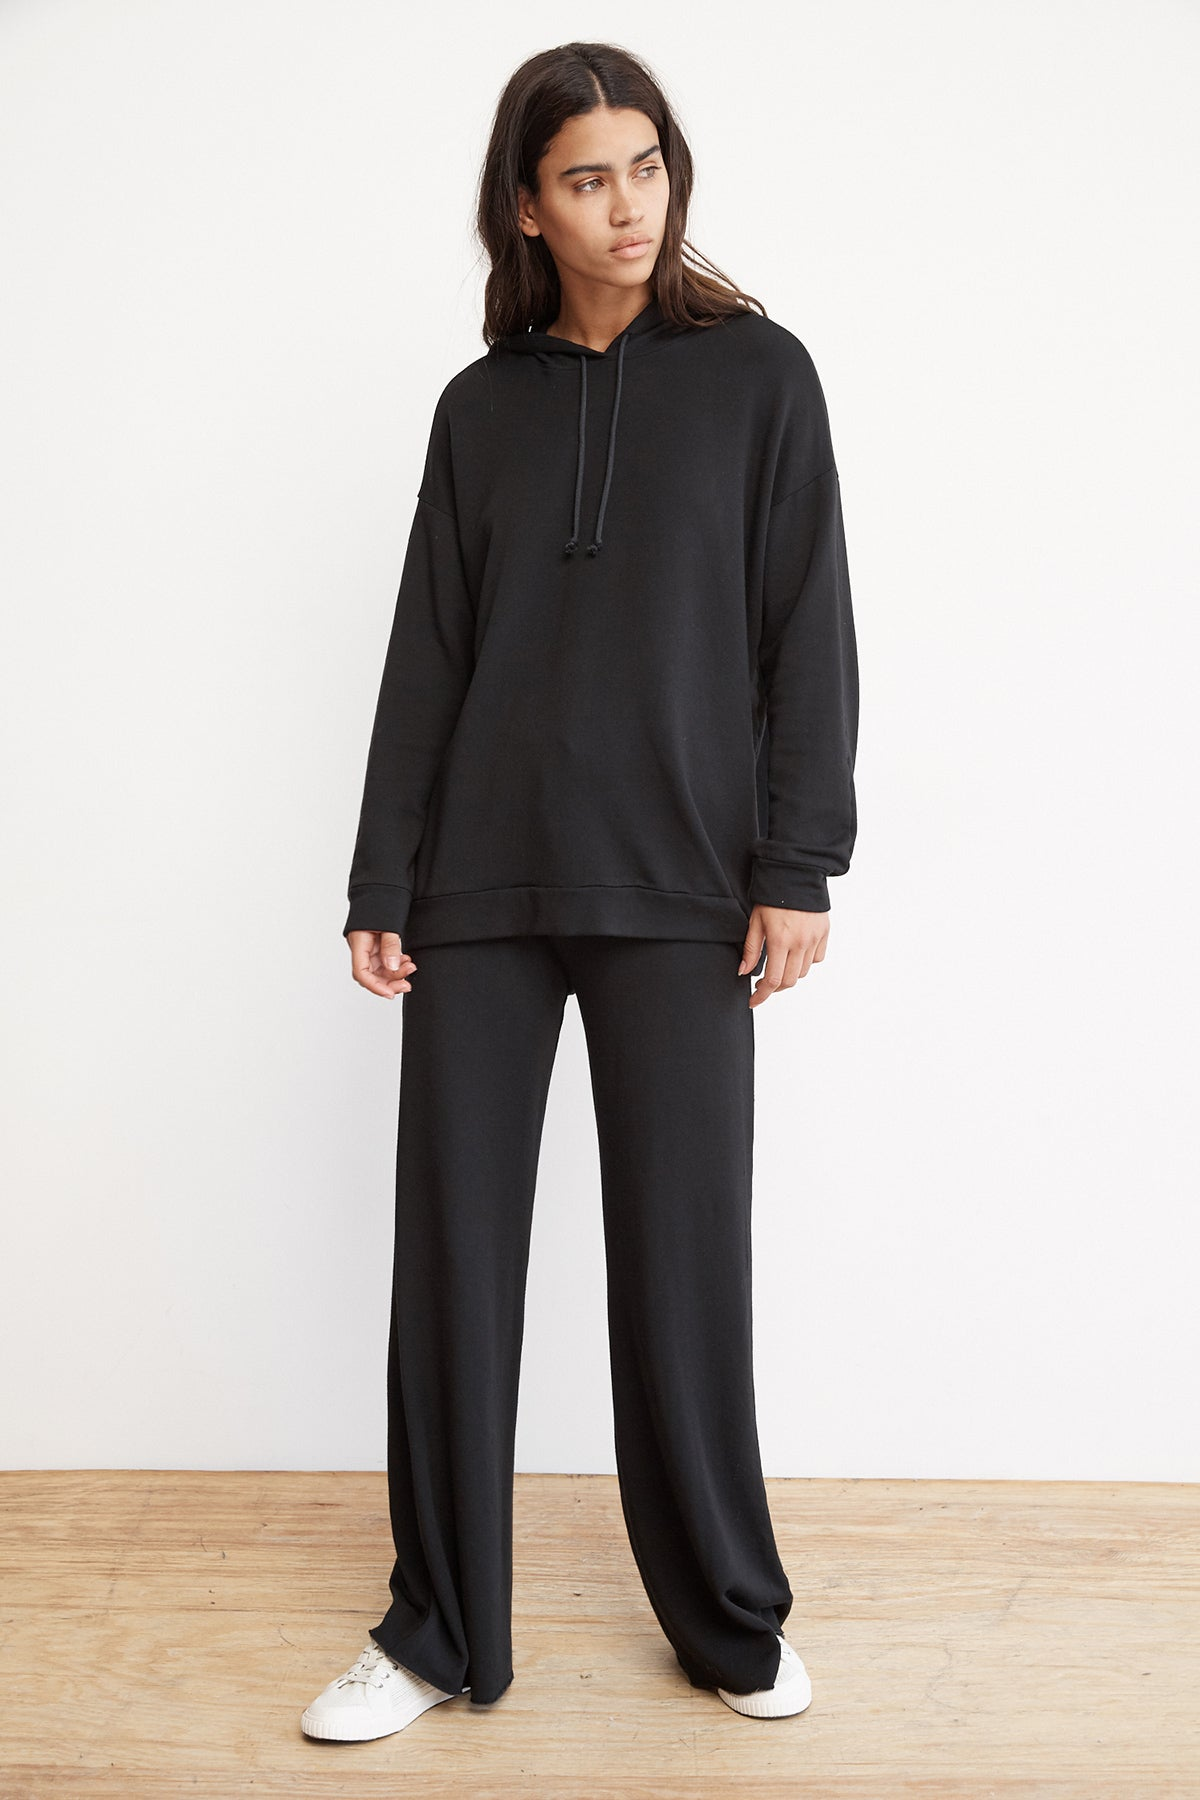 KIT LUXE FLEECE WIDE LEG PANT